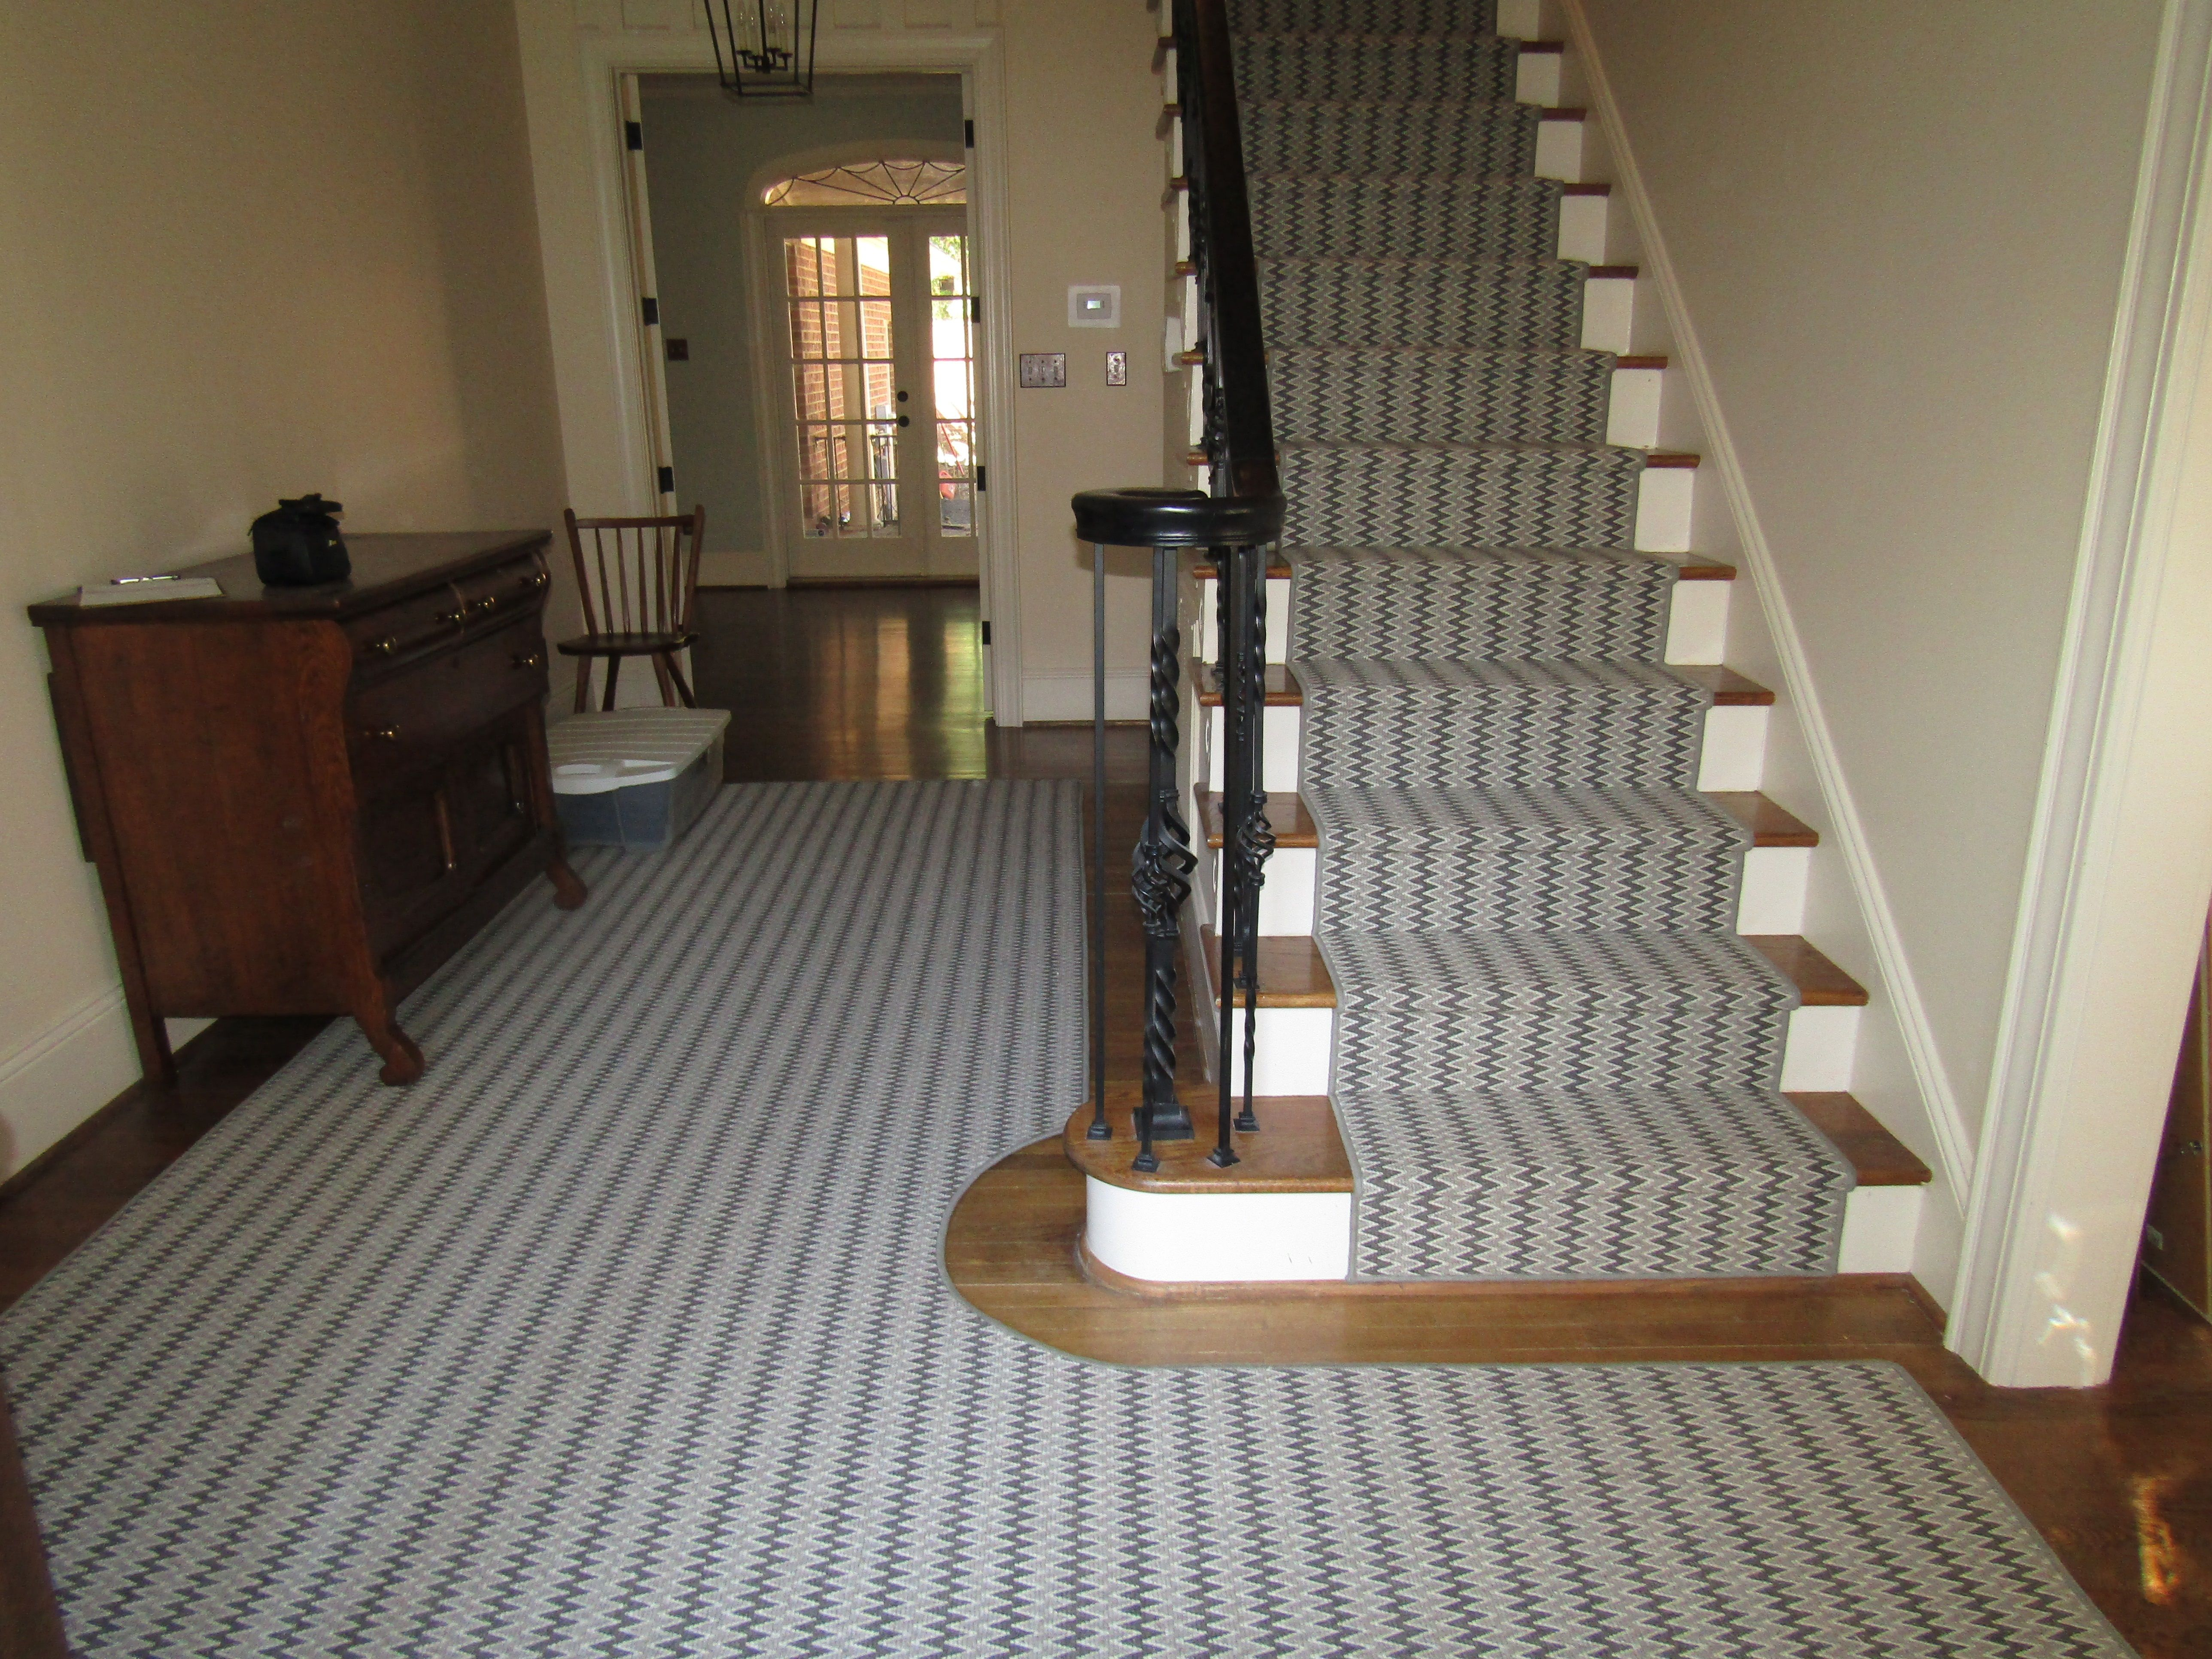 Another Example Of A Stair Runner And Area Rug Cut And Laid To Match